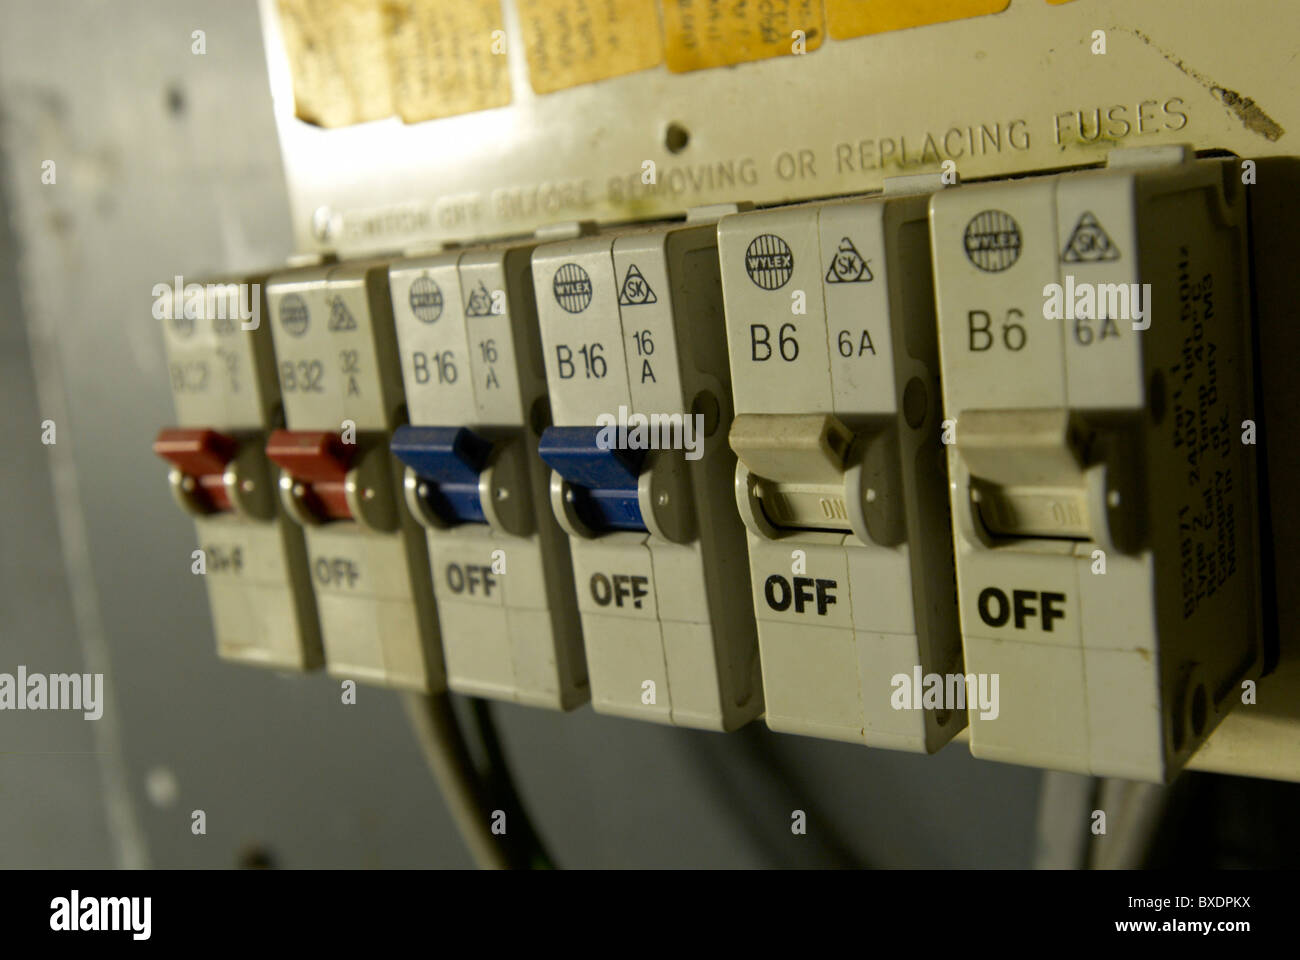 hight resolution of old electrical installation with fuse box stock image